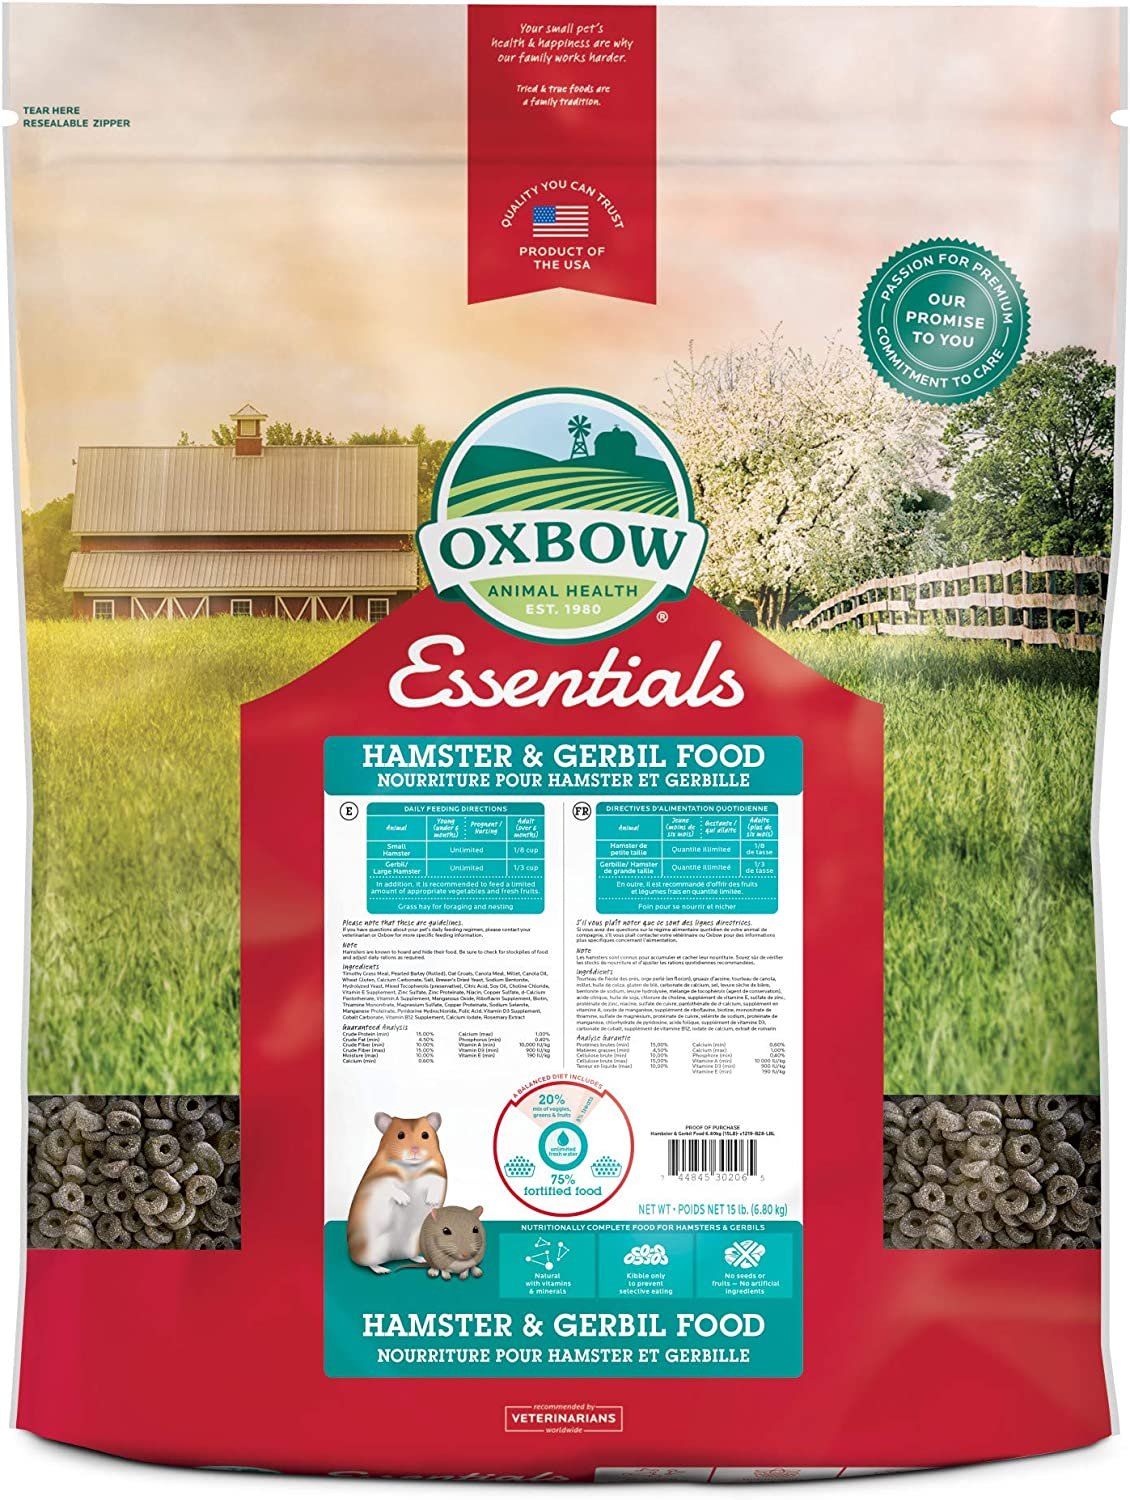 Oxbow Essentials Hamster Food and Gerbil Food - All Natural Hamster and Gerbil Food